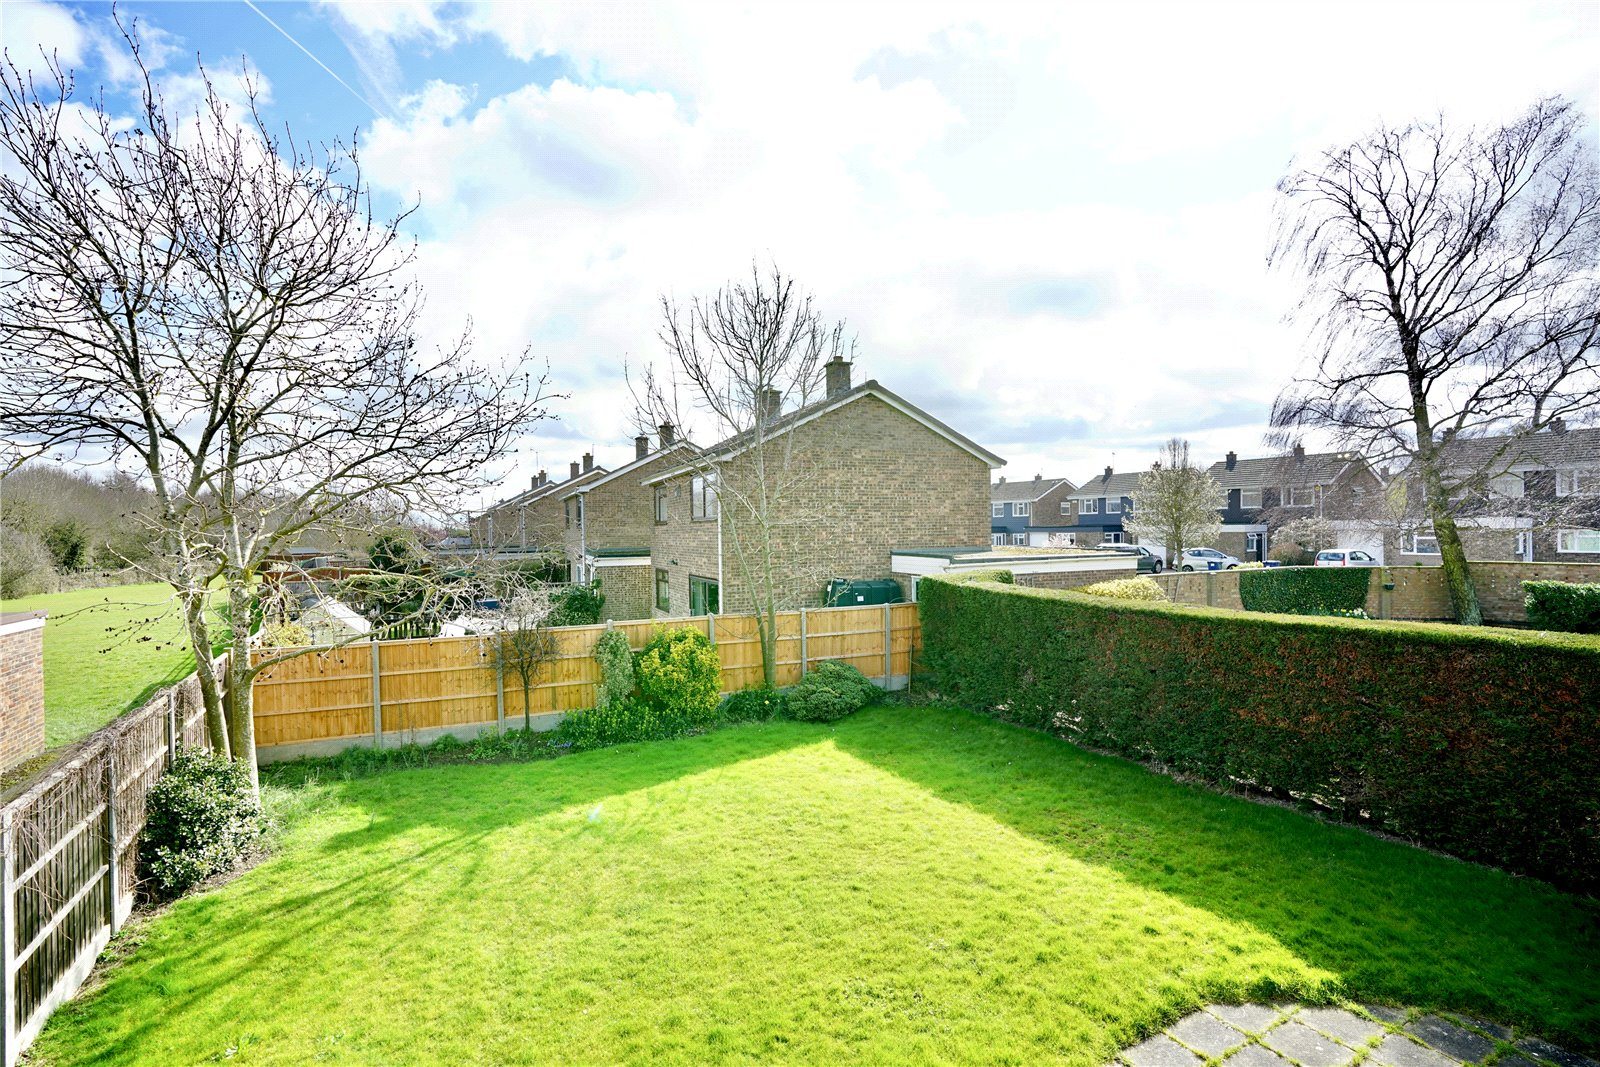 4 bed house for sale in Manor Close, Great Staughton 3